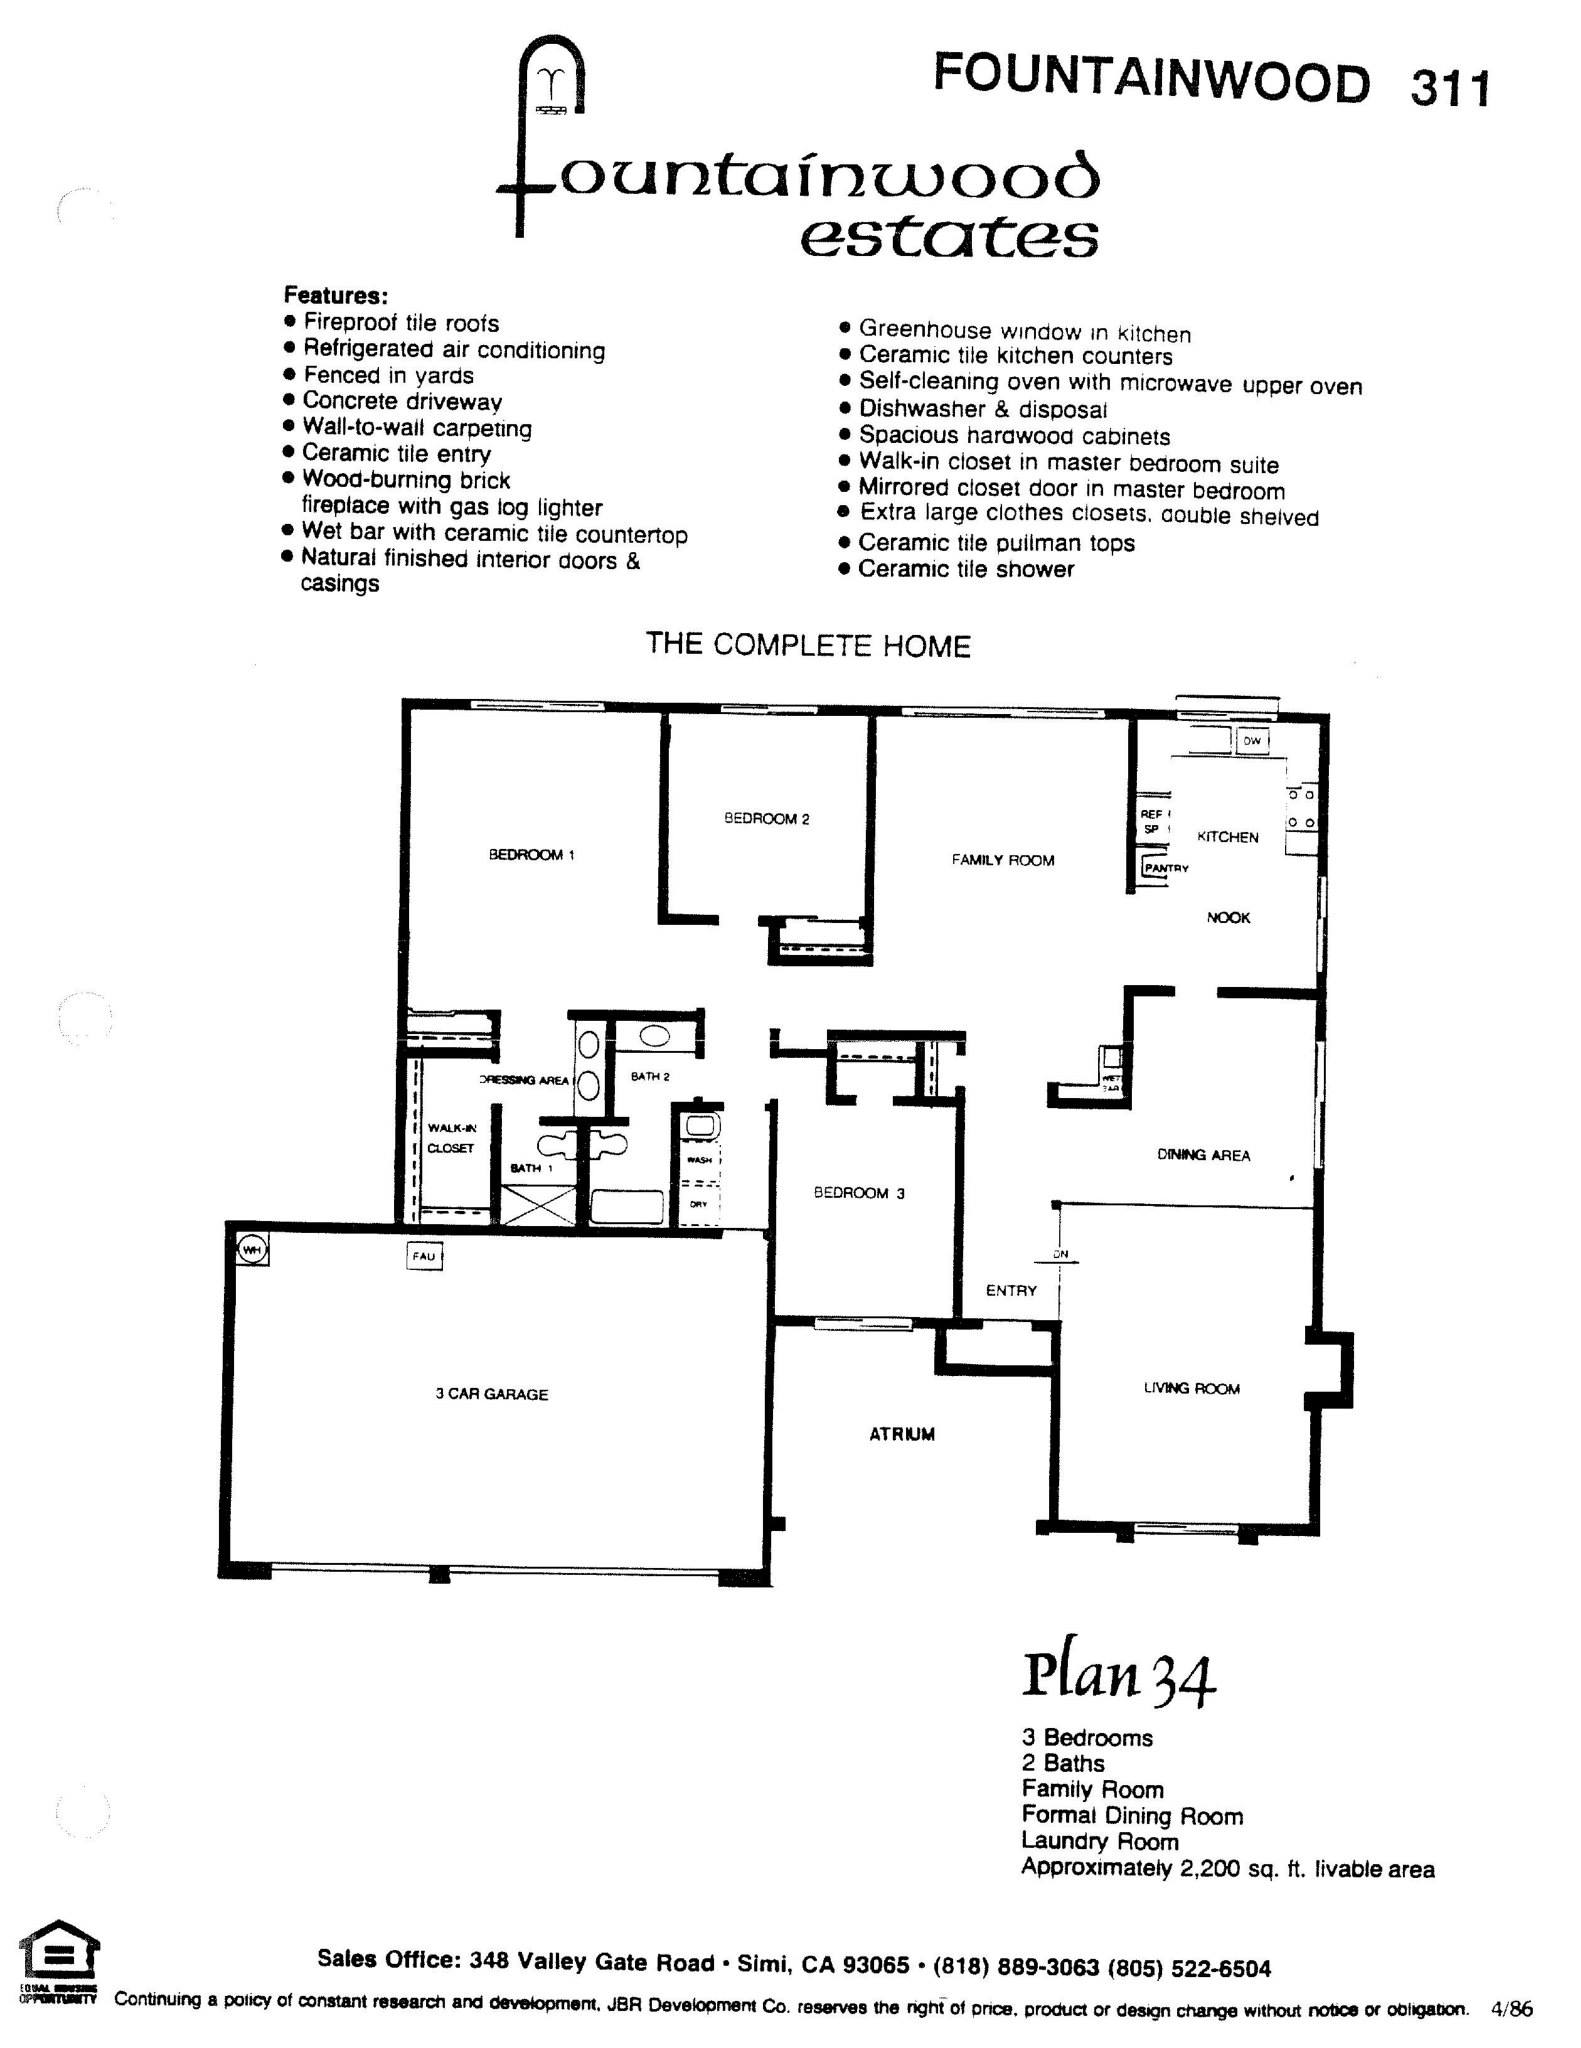 Fountainwood Estates - Plan 34